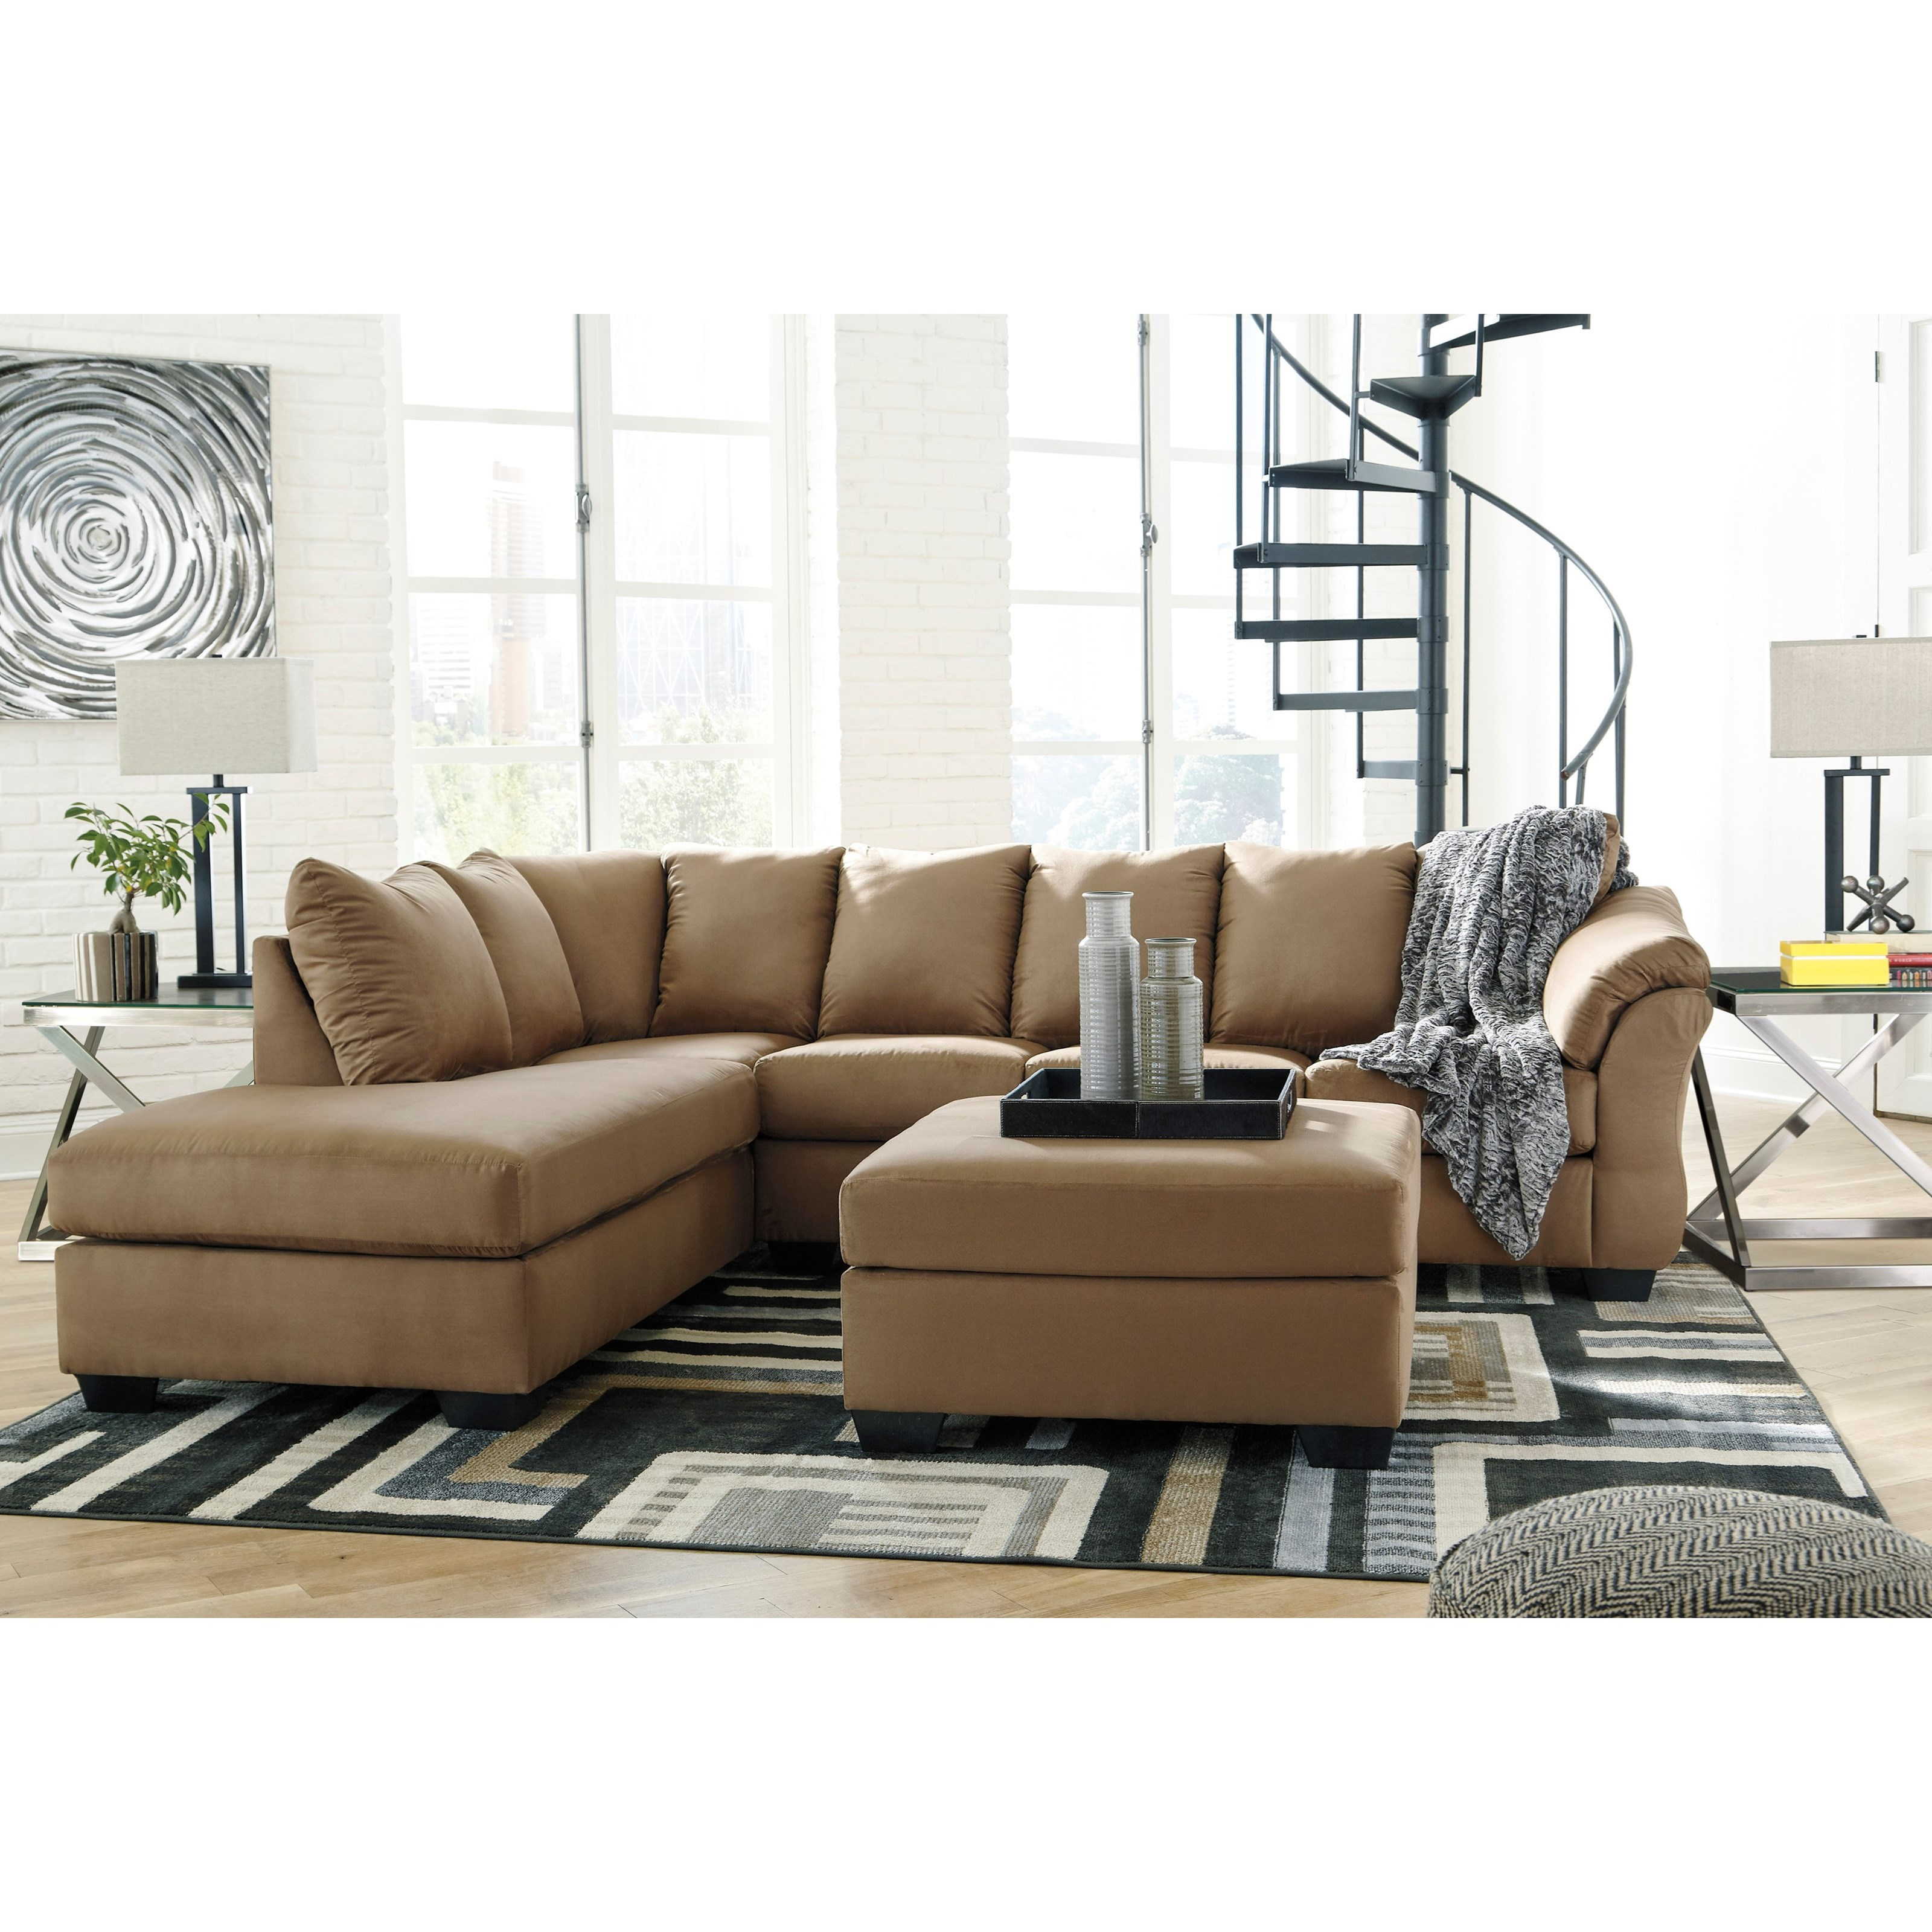 Darcy - Mocha Stationary Living Room Group by Signature Design by Ashley at Suburban Furniture